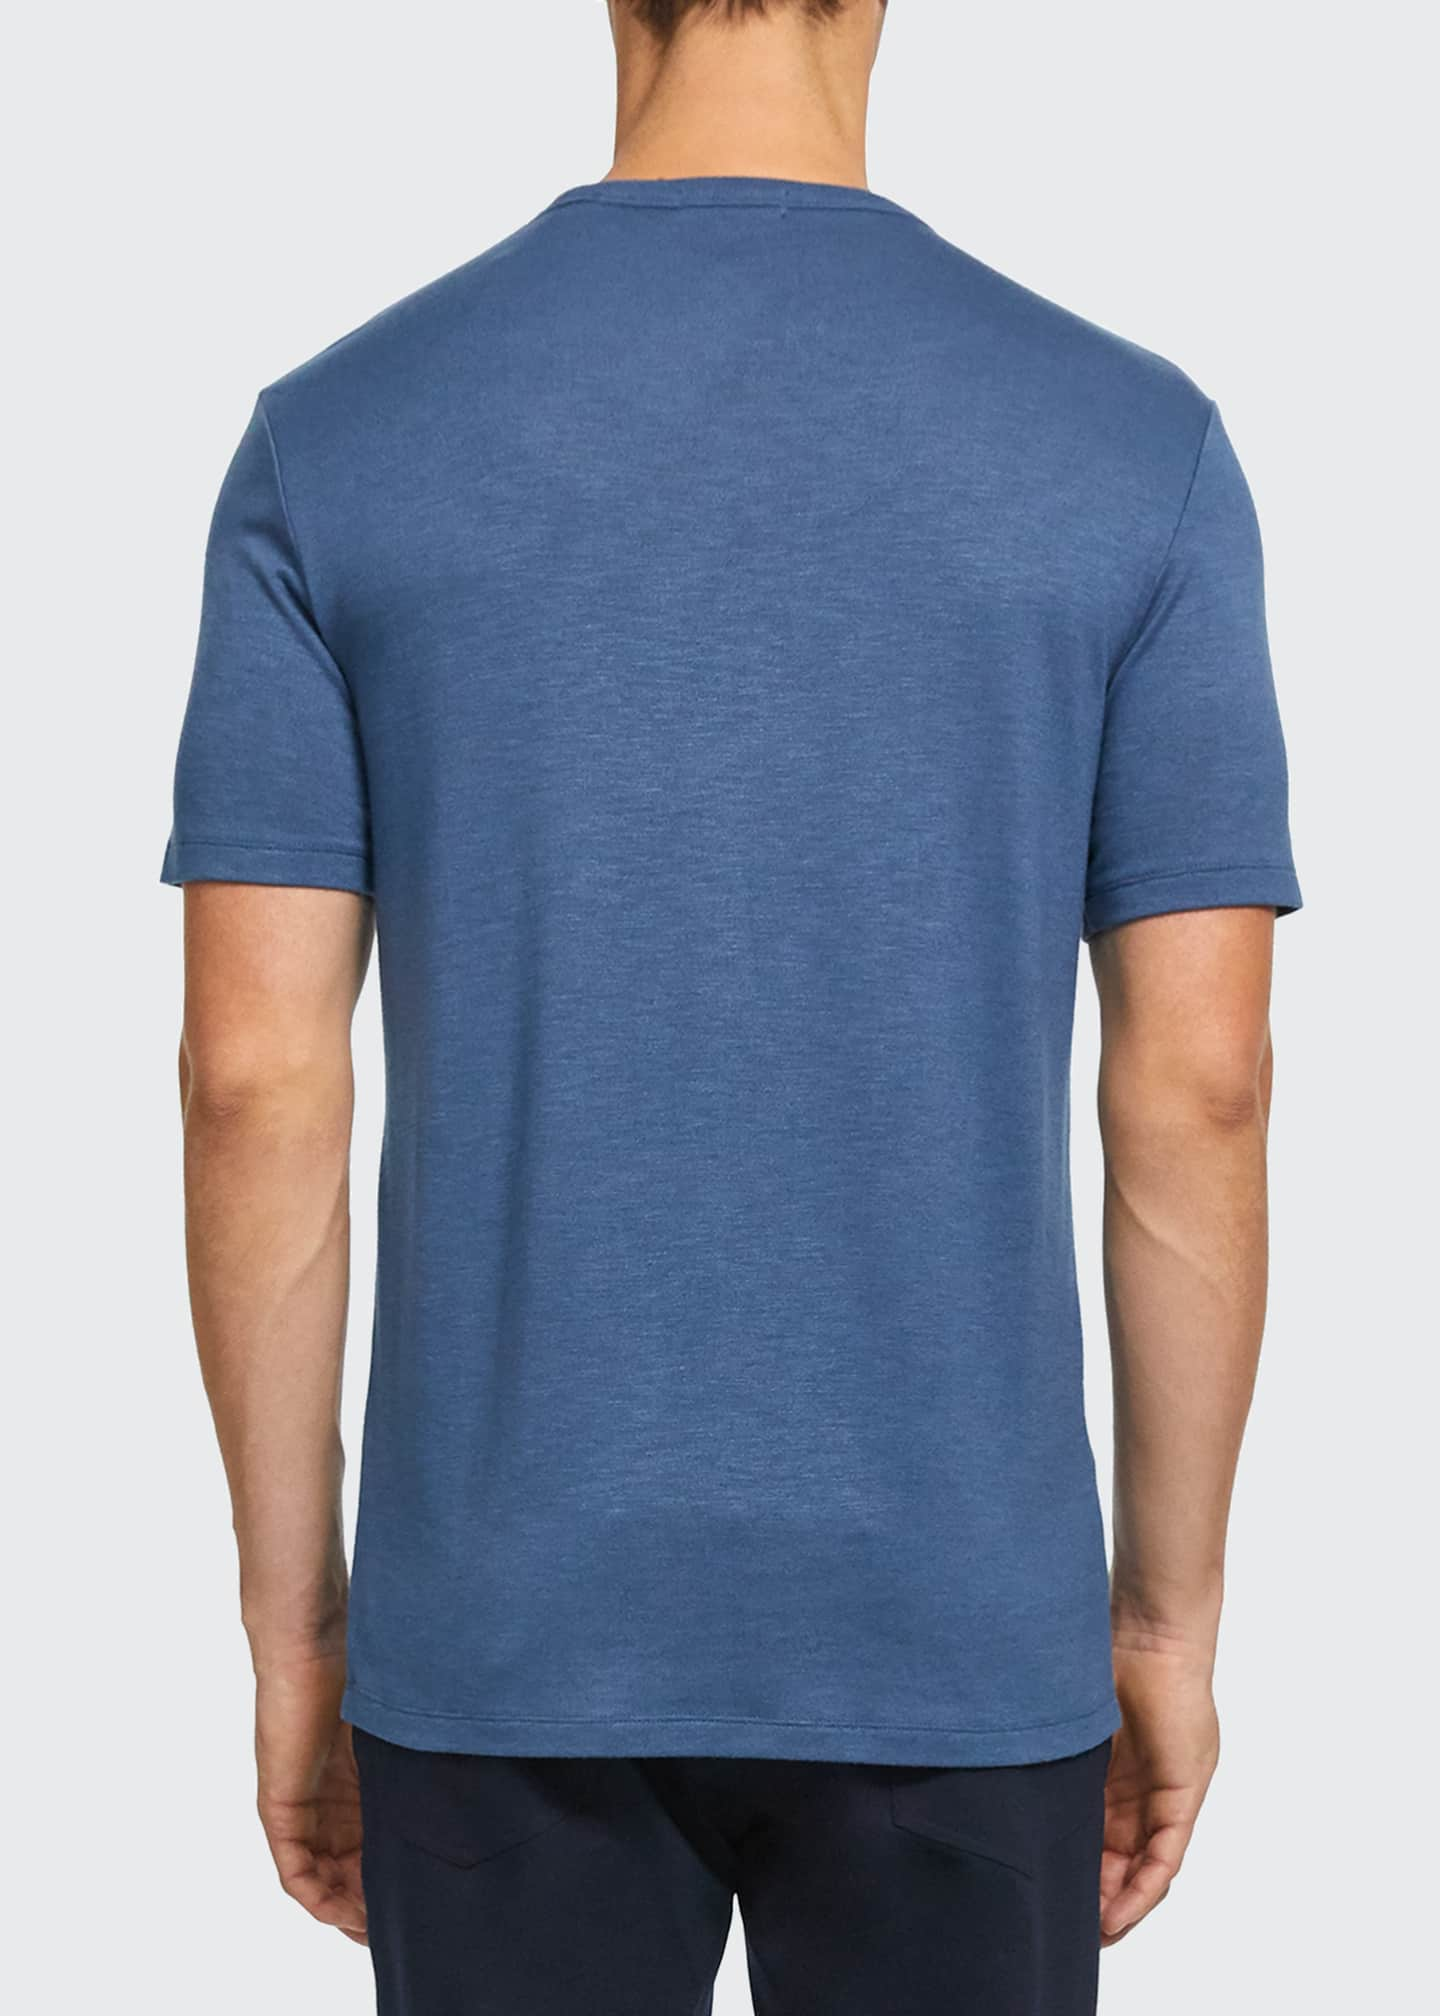 Image 2 of 2: Men's Anemone Essential T-Shirt